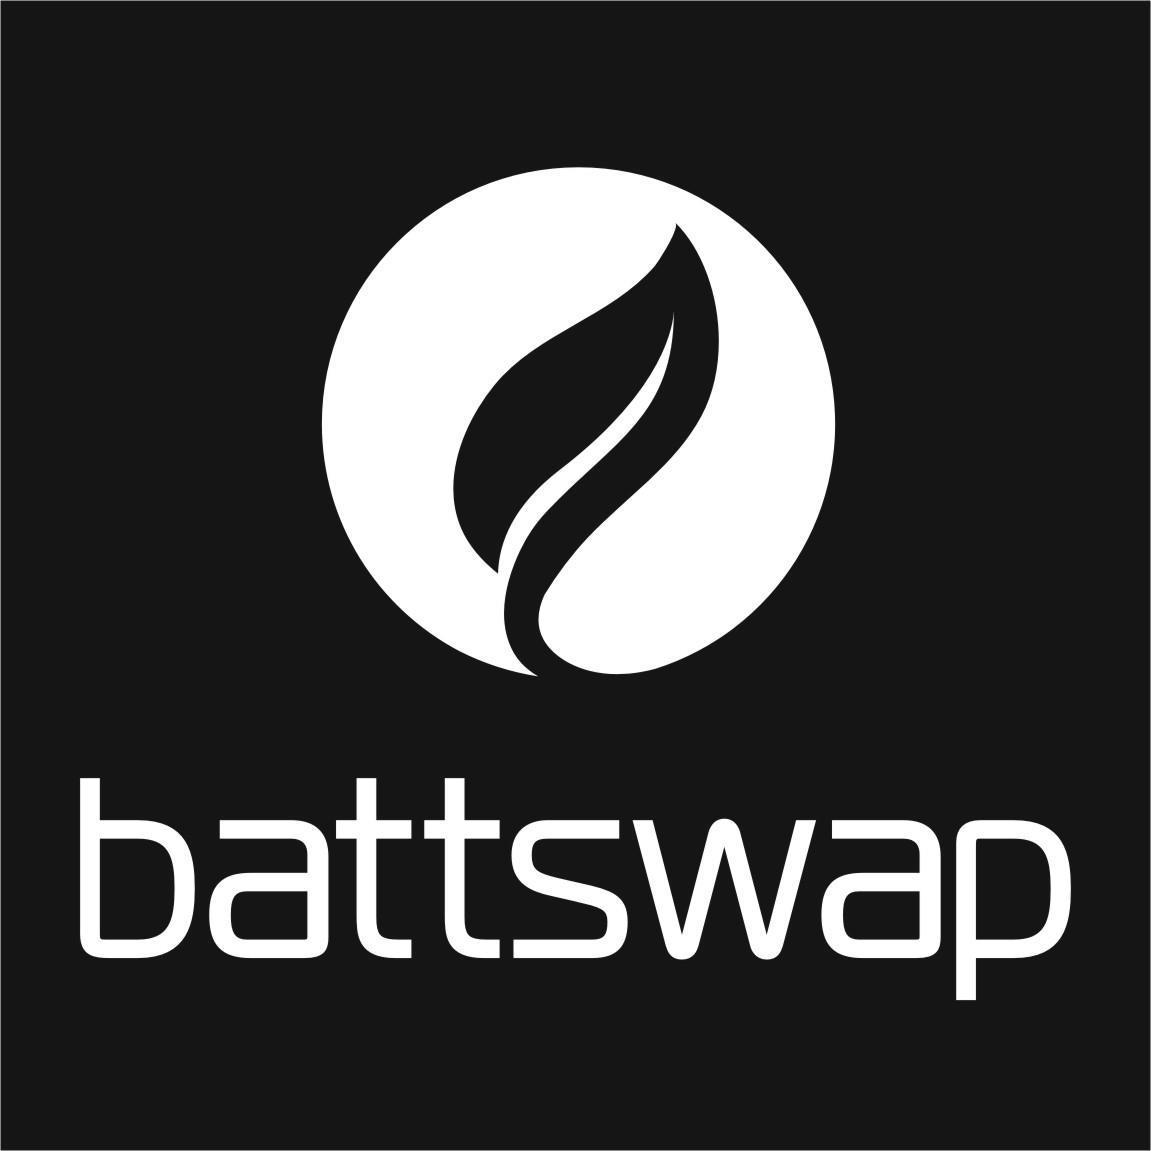 BattSwap